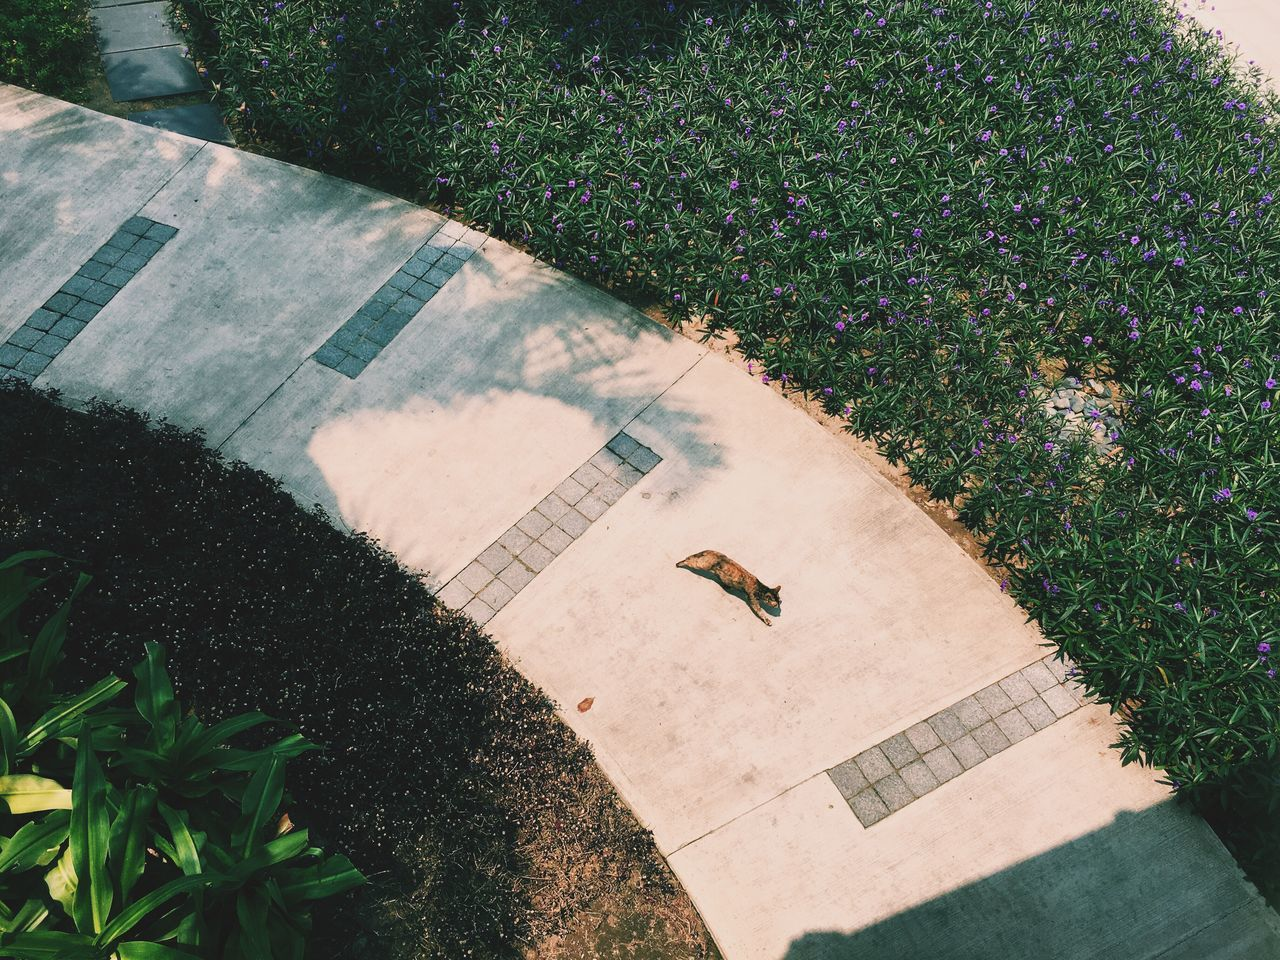 Meow Cat Summer Vscocam Vscogood VSCO Garden Hyatt Regency Hyatt Da Nang Vietnam Flower Showcase March Vacation Hello World Chilling Beautiful Surroundings Hotel